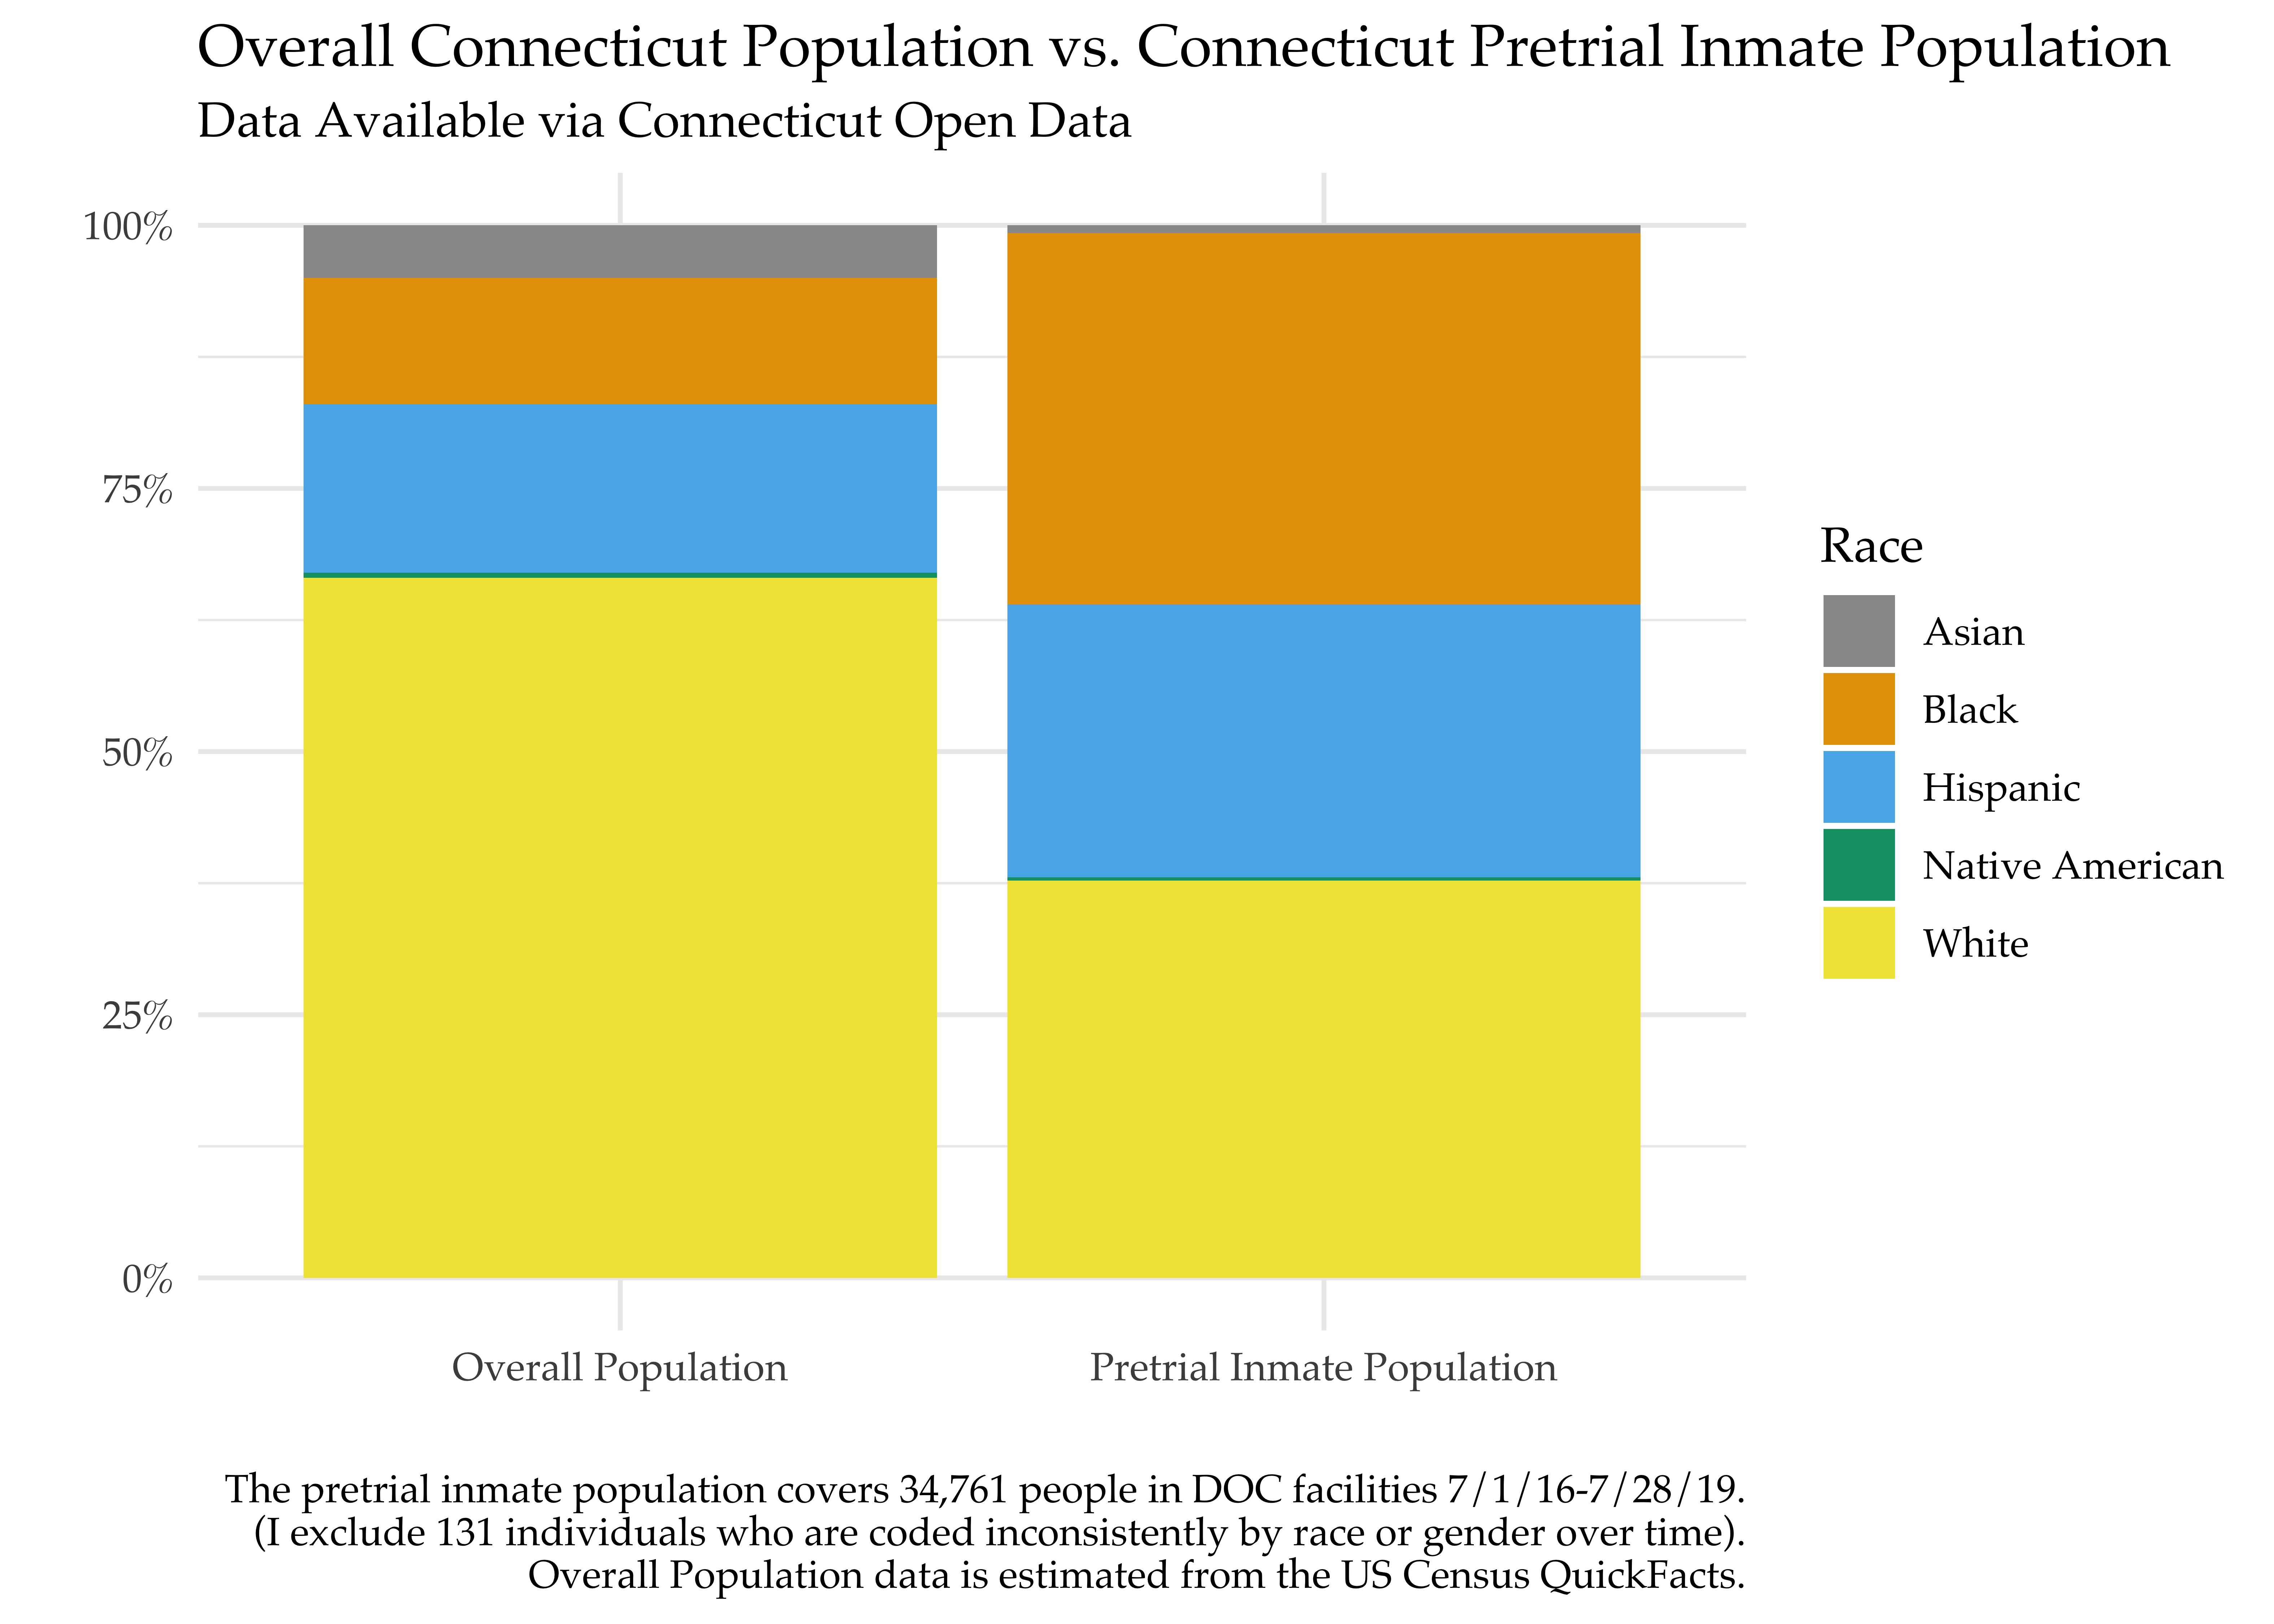 Exploring Connecticut's Pretrial Inmate Data | The Little